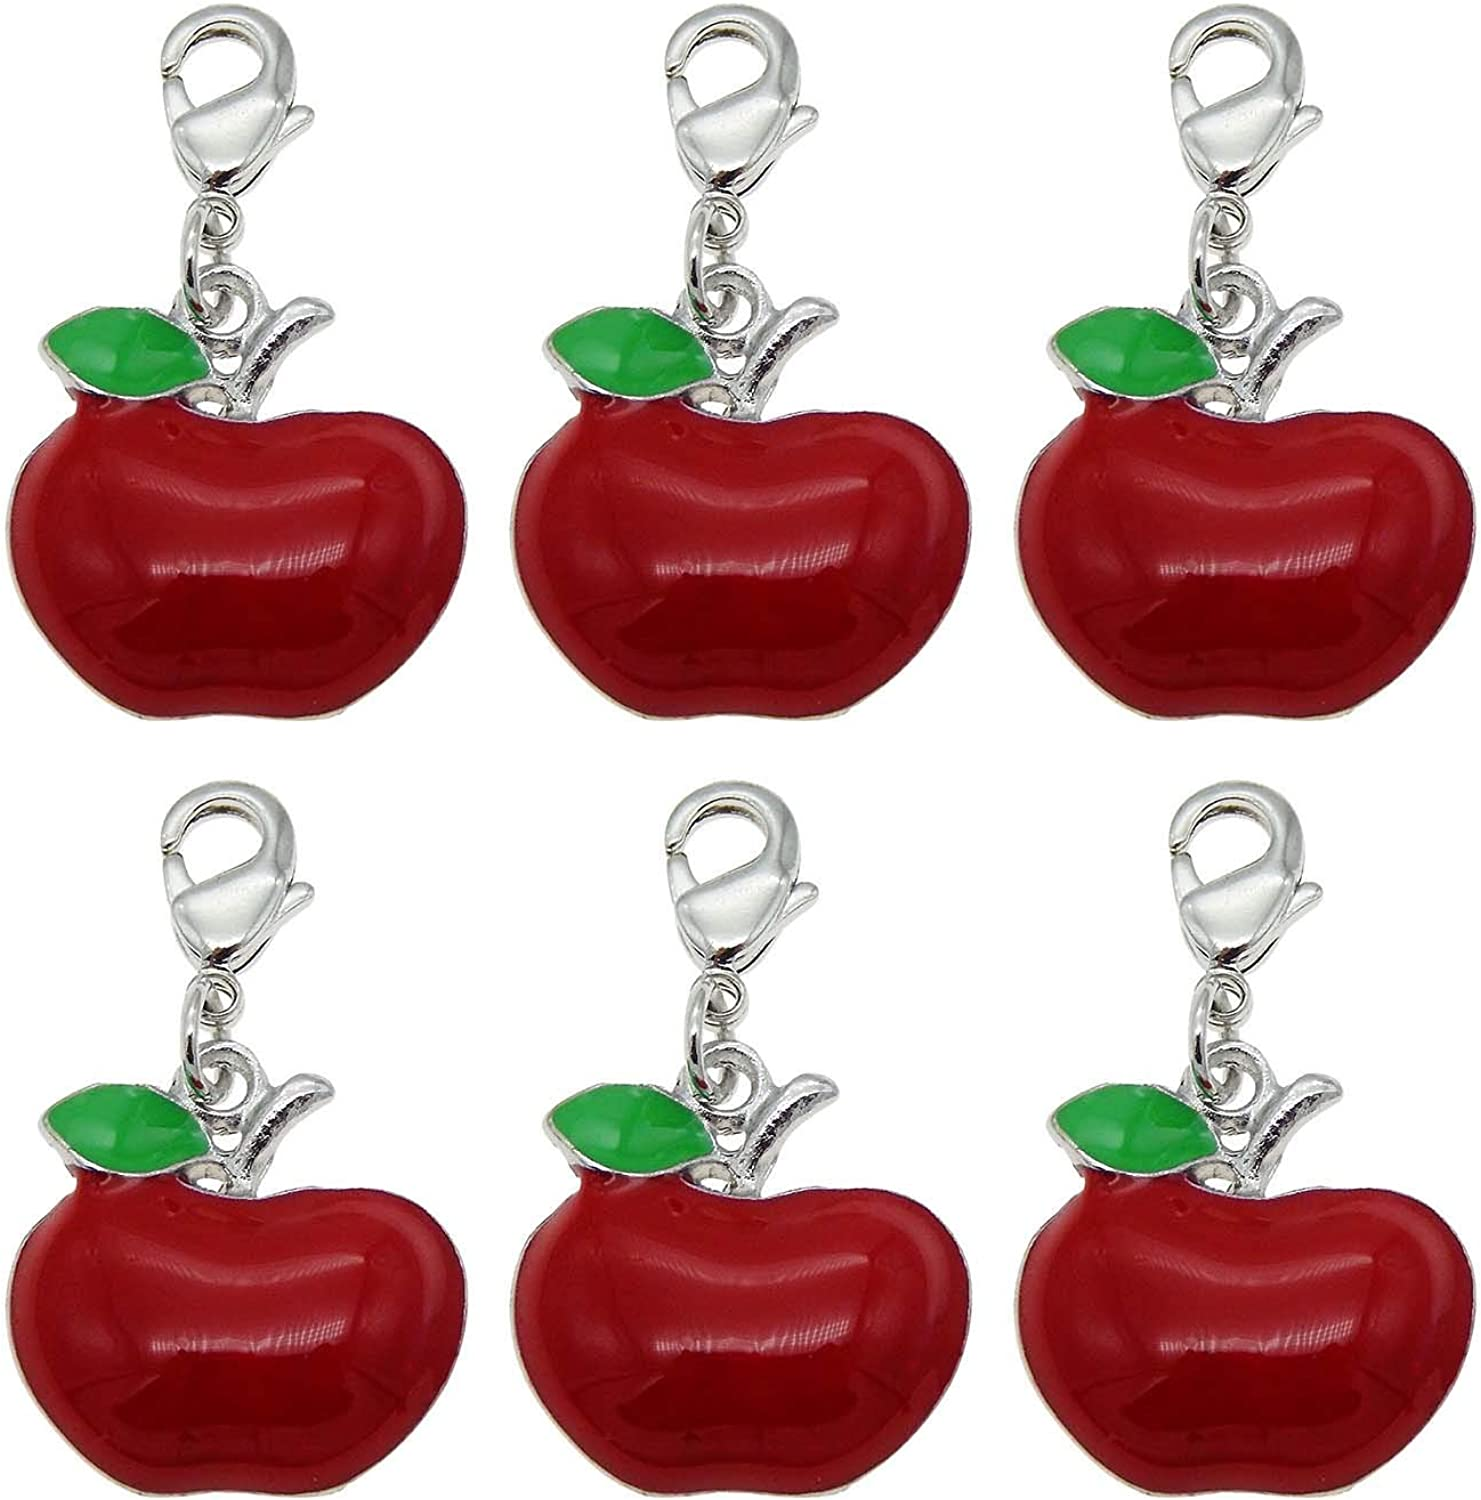 28pcs Silver Enamel Red Apple Keychain Charm Pet Collar Charm Purse Charm with Lobster Clasp